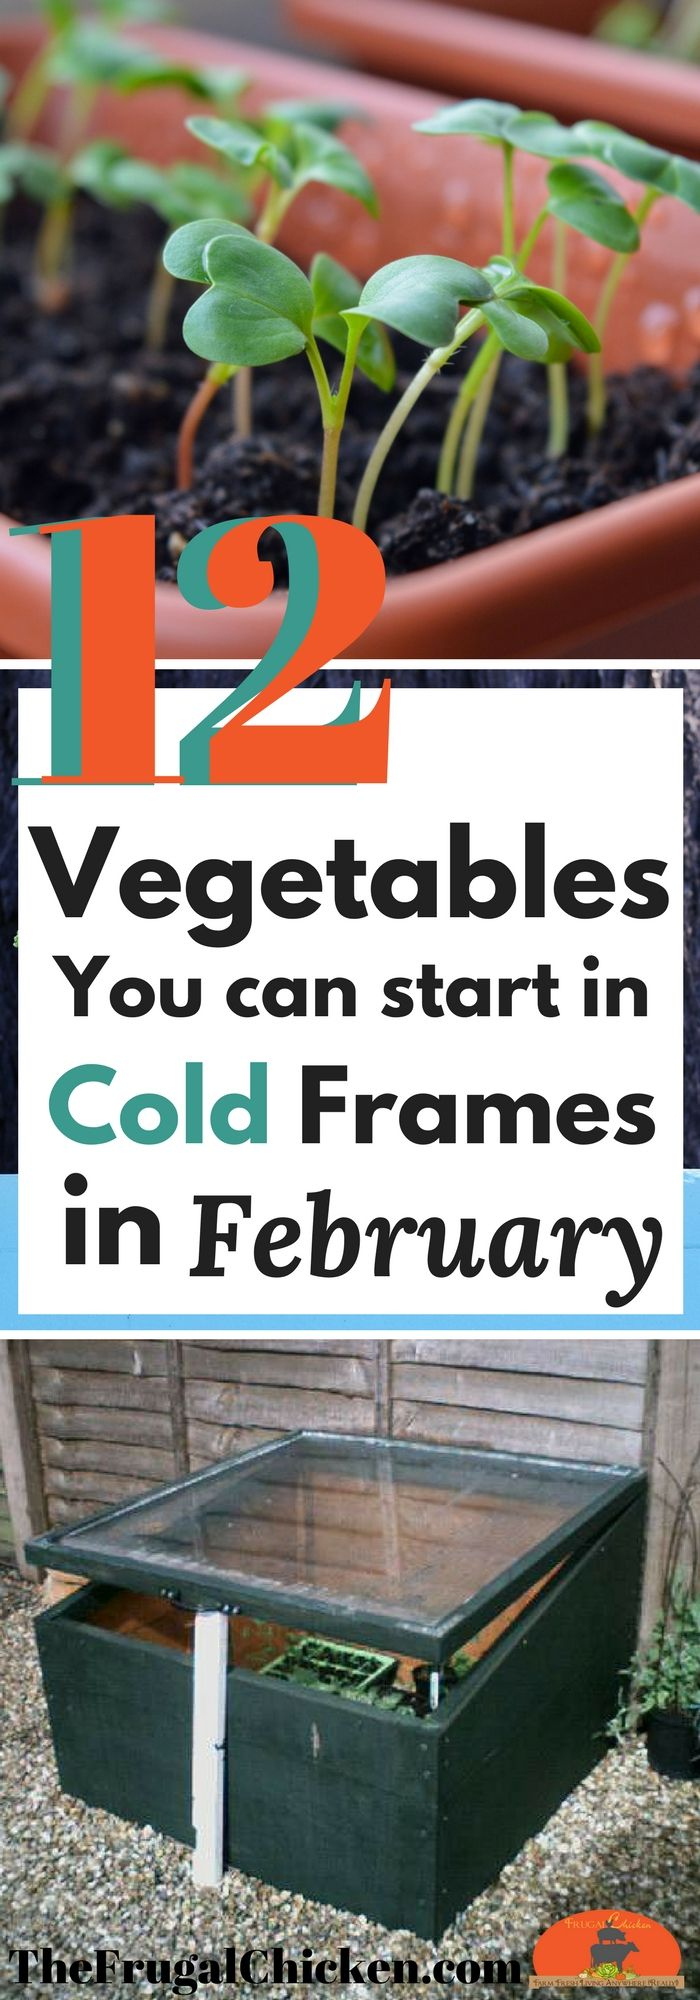 Even if it's still cool outside, there's still plenty you can do in your garden. Here's 12 vegetables you can start right now in cold frames to get a jump on planting season!